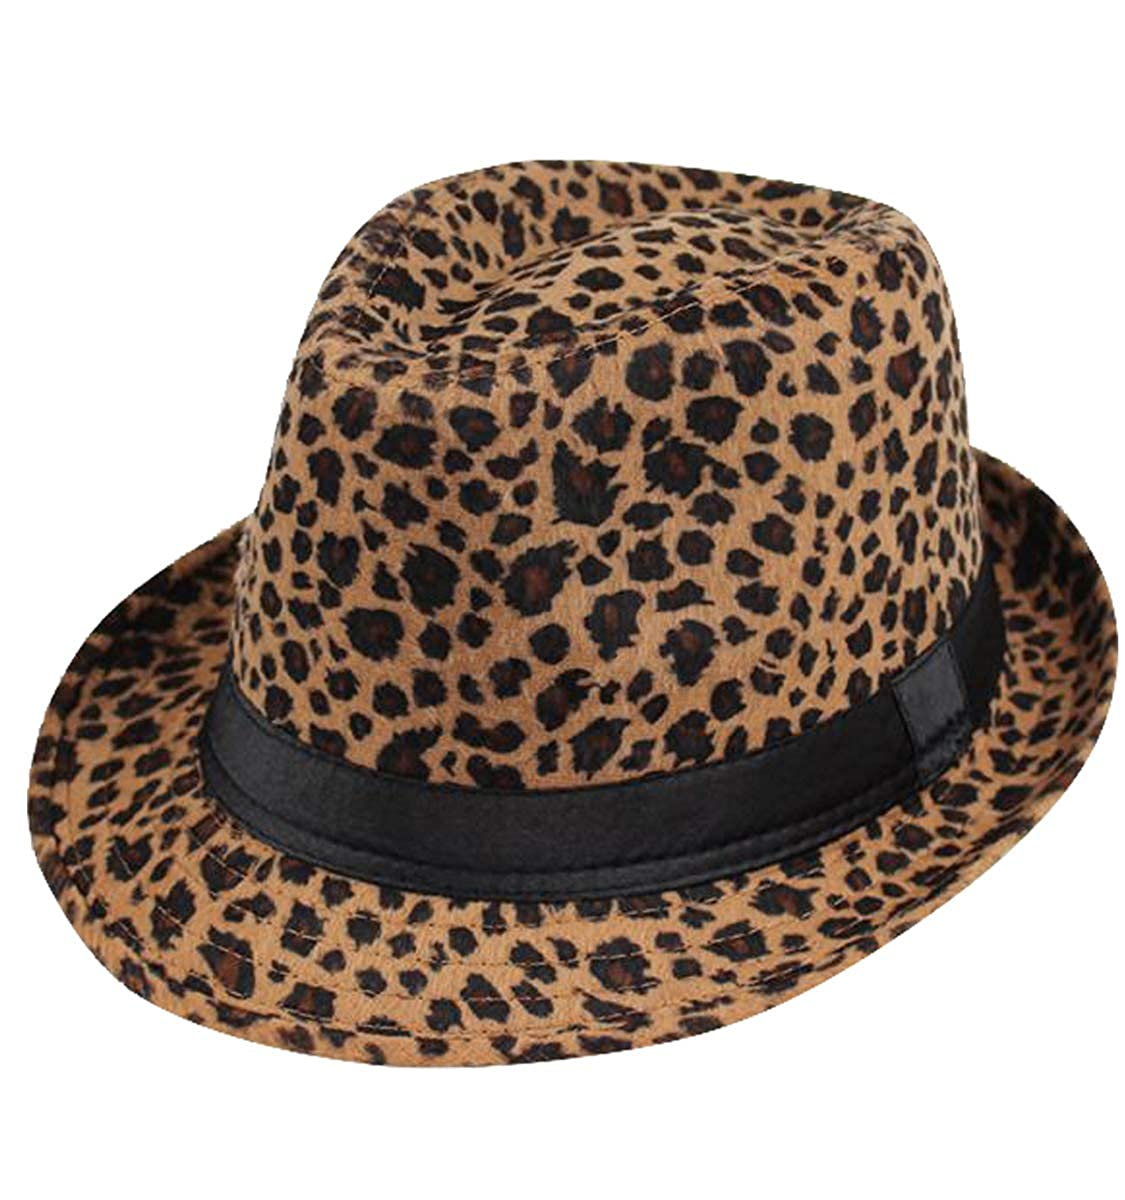 Clecibor Leopard Print Fedora Soft Outdoor Hat Cap Men Women Jazz Hat